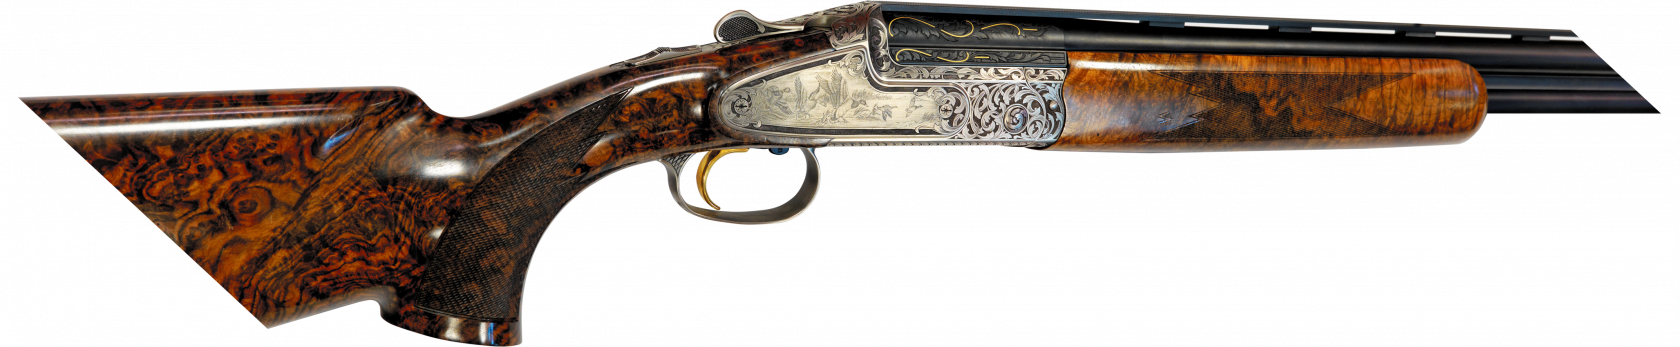 Blaser+F3+Competition+Imperial+12-76-810+4_РОВНО.png